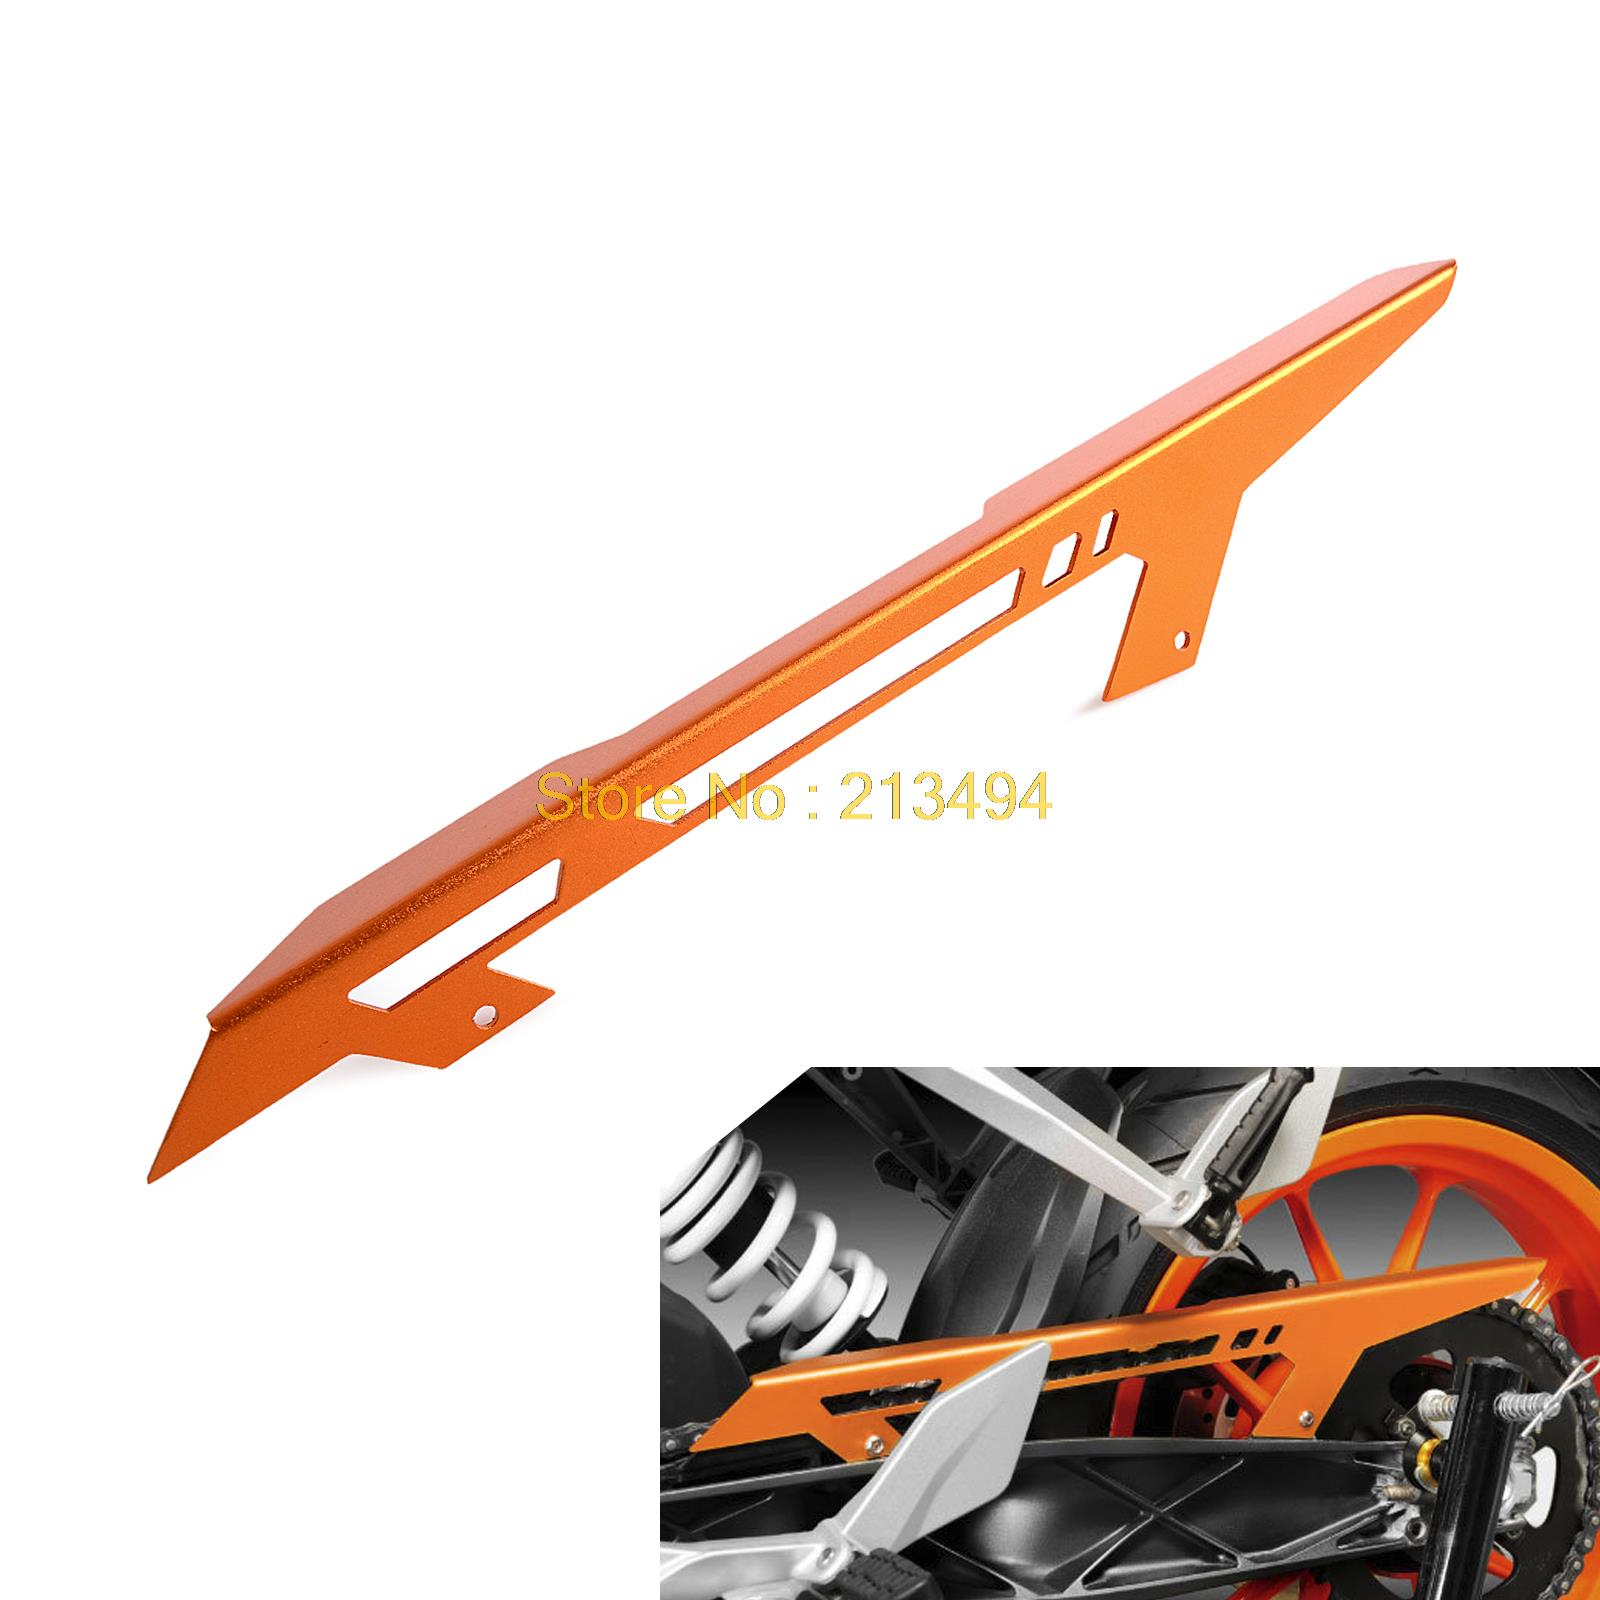 NICECNC Orange Anodized Chain Guard Cover For KTM 125 200 390 Duke 2011 2012 2013 2014 2015 2016 RC125 RC200 RC390 image